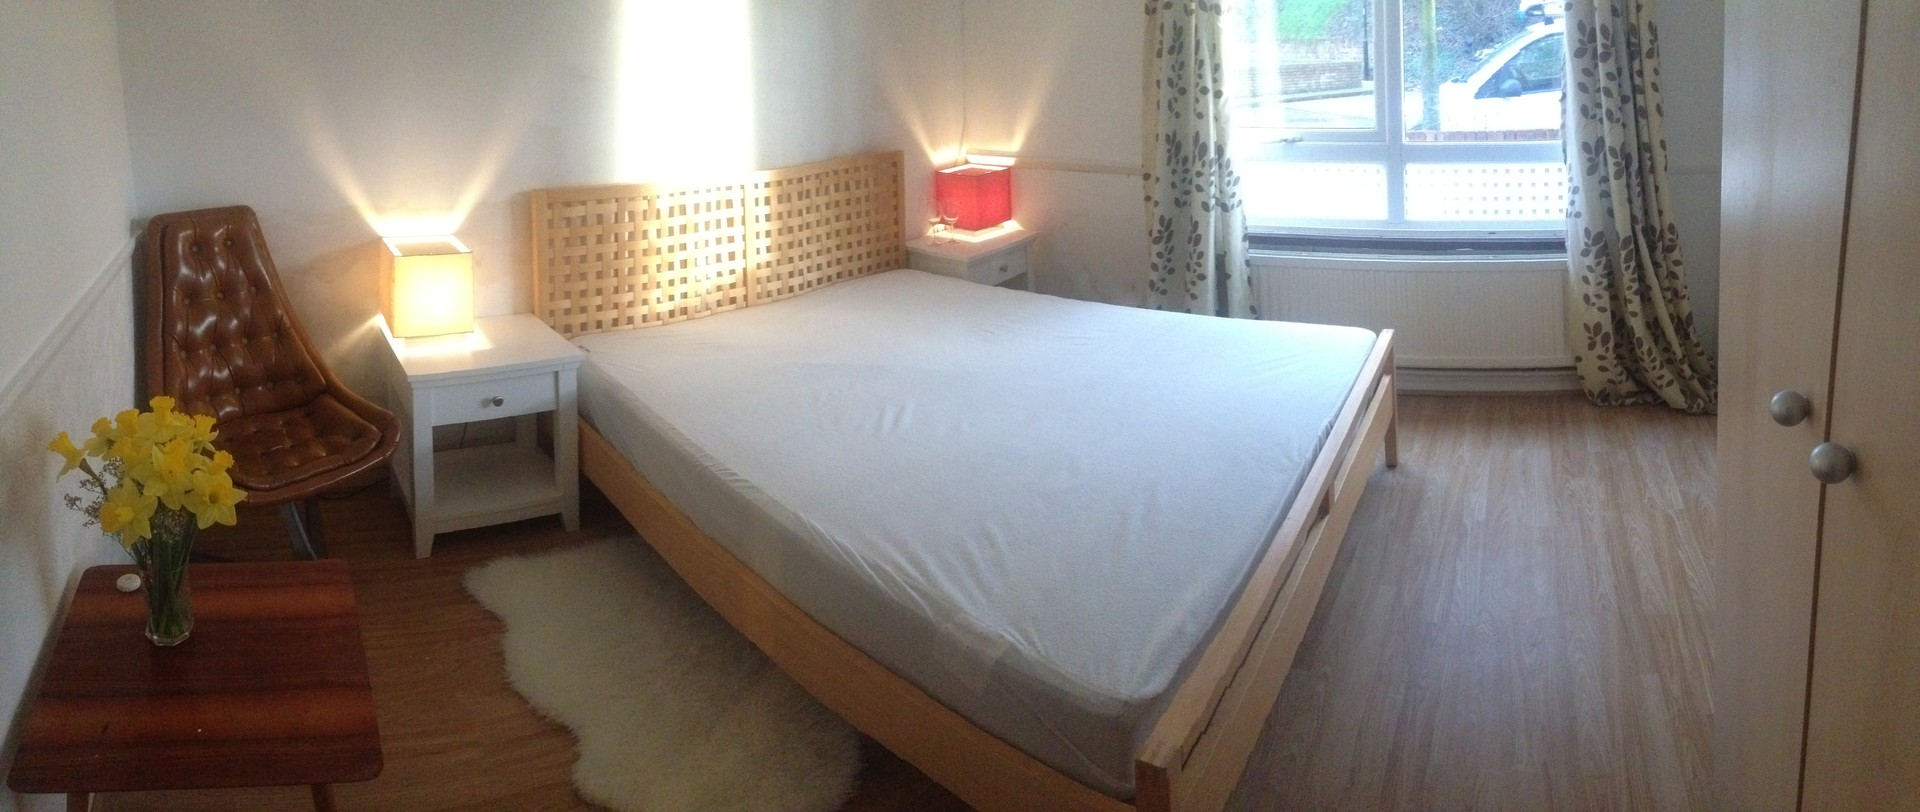 Rooms Students West London Rent